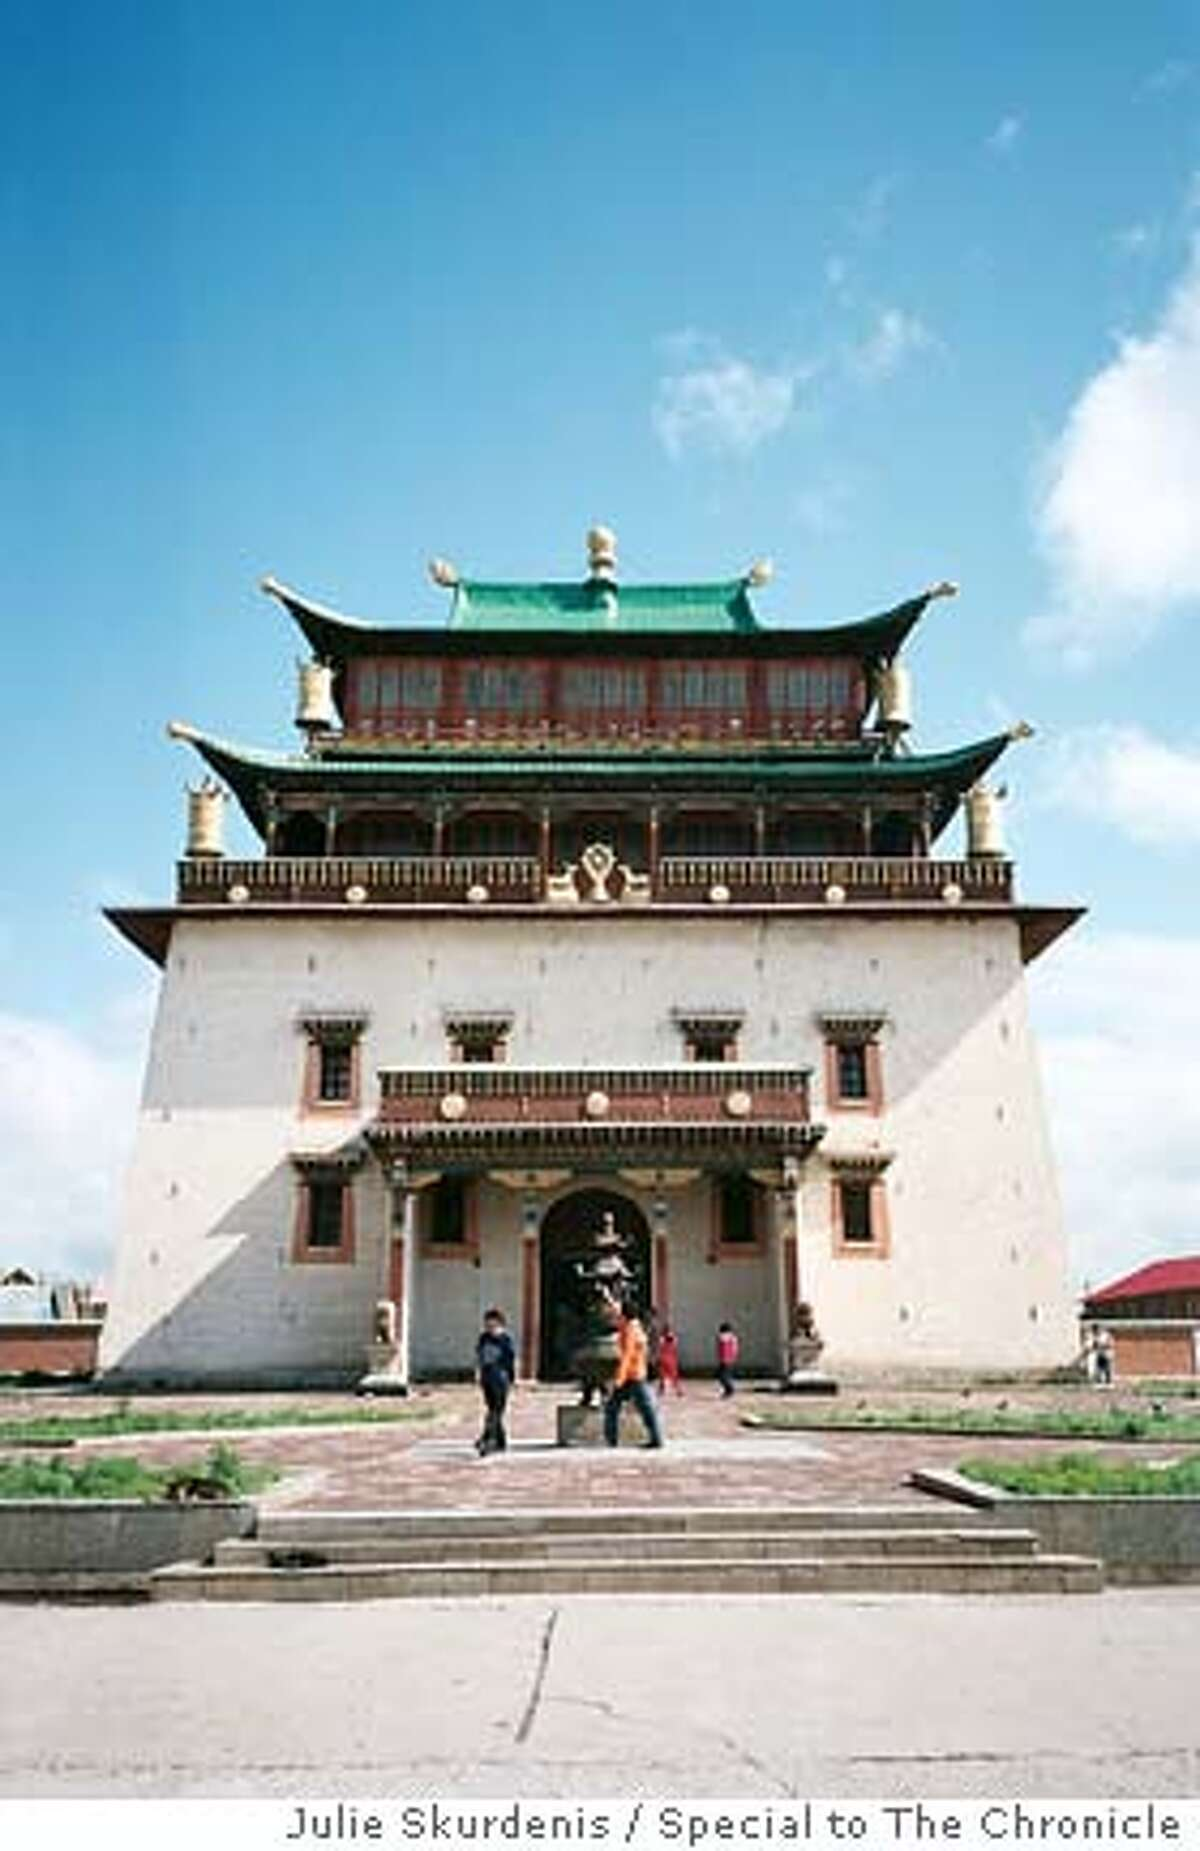 Gandan Monastery, outside of Ulan Bator. Photo by Julie Skurdenis, special to the Chronicle